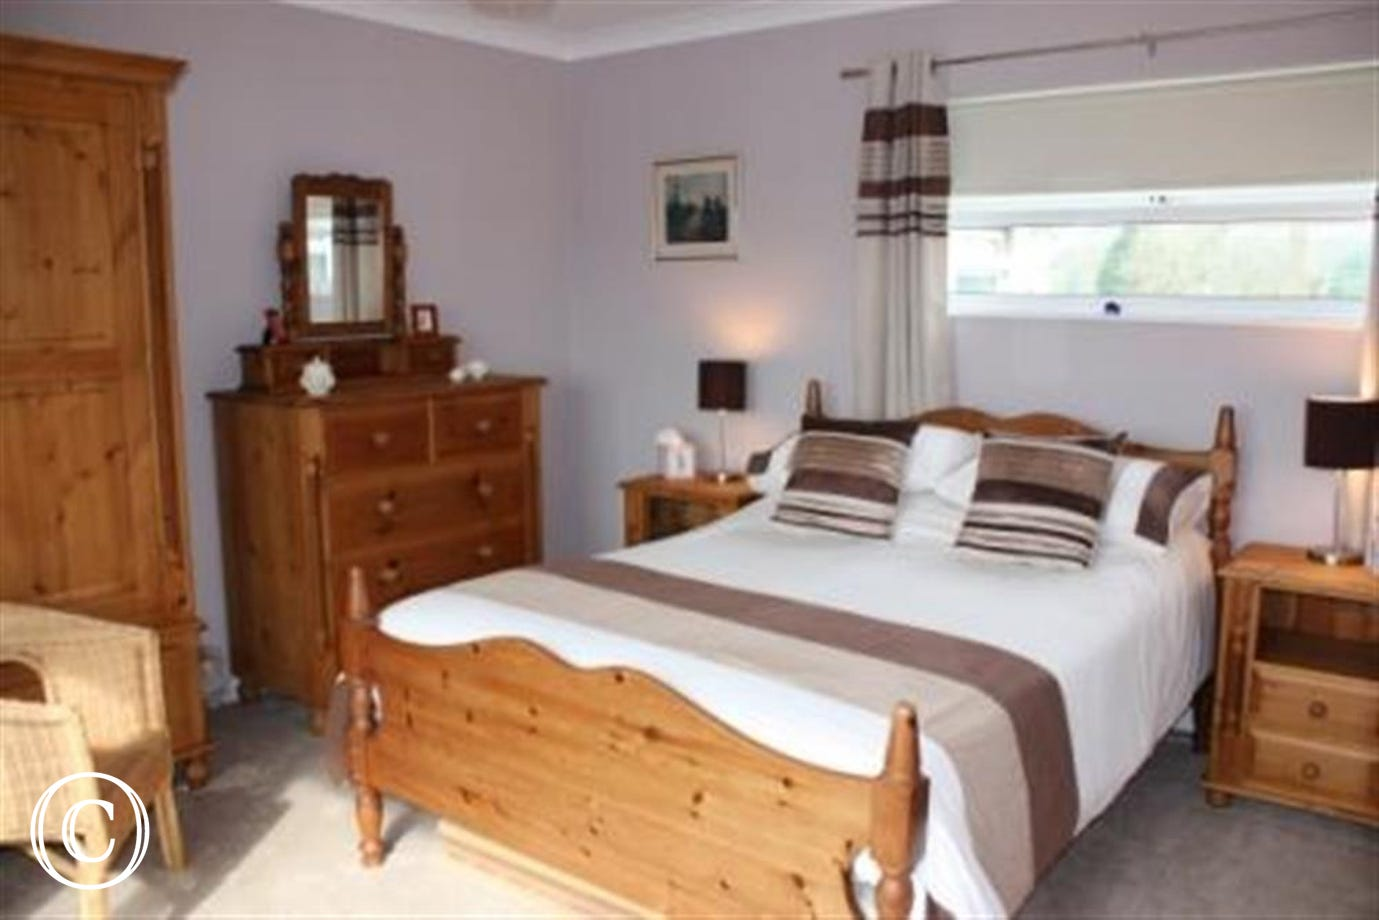 Spacious double bedroom with en-suite bathroom, beds made up for your arrival